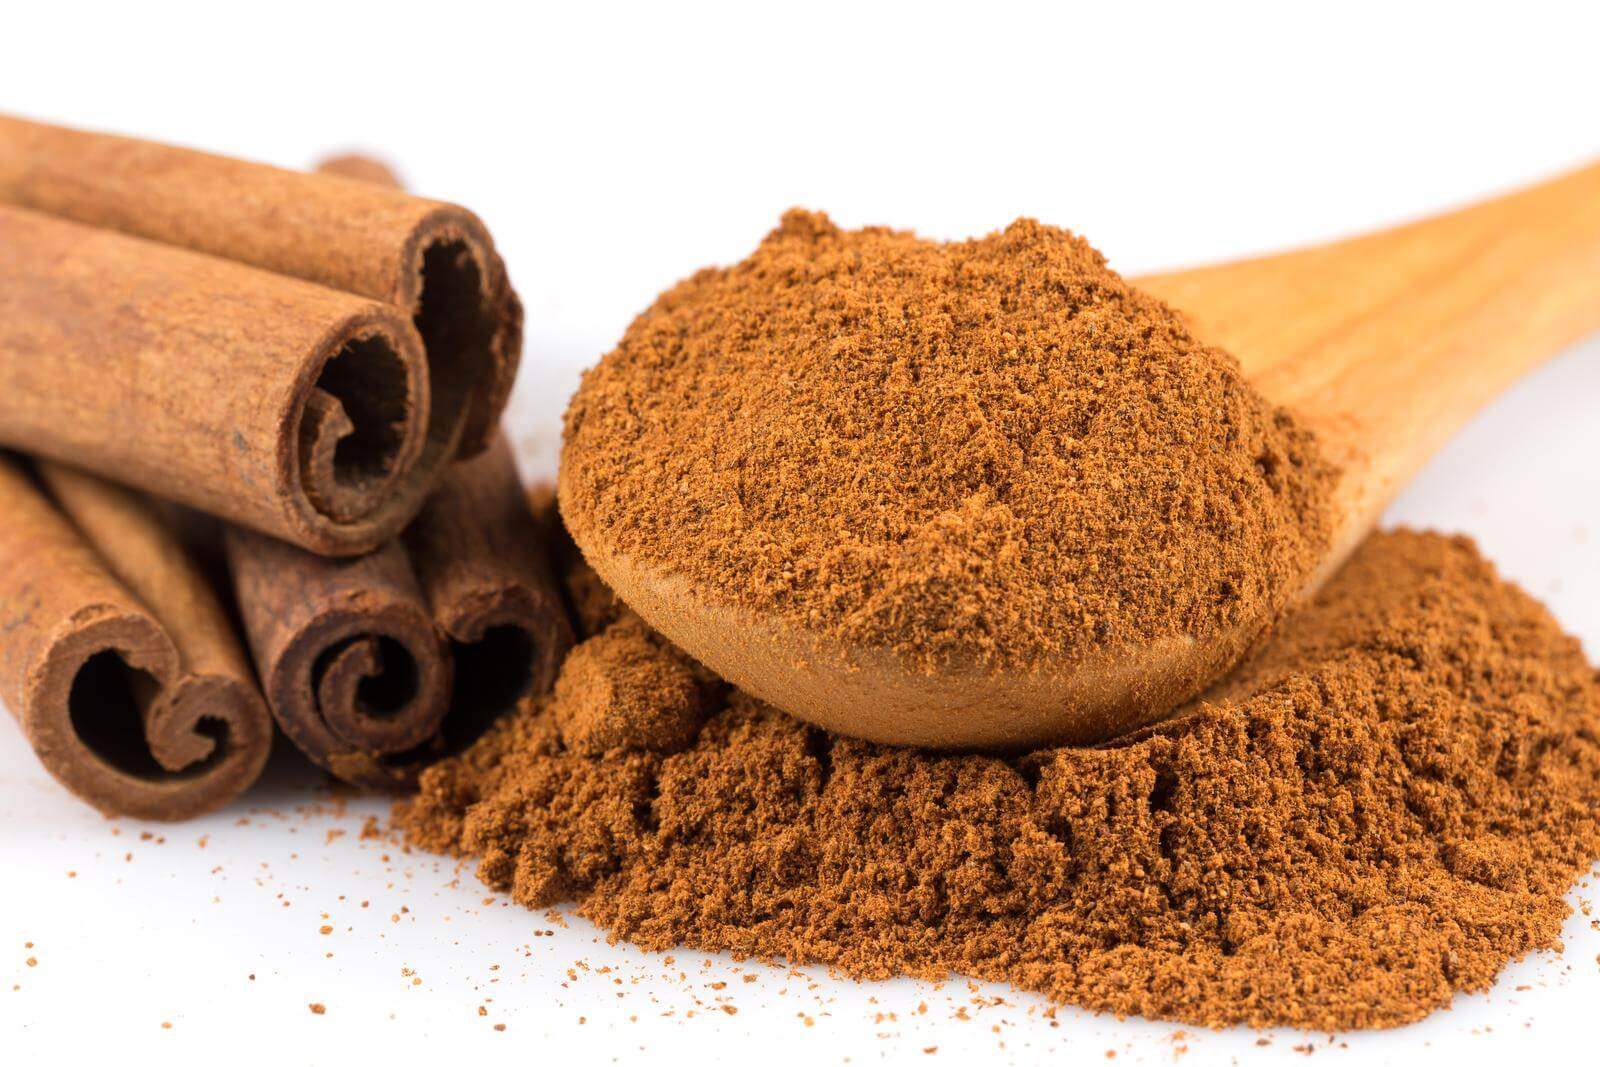 Cinnamon bark powder and cinnamon sticks can both be used to create natural remedies.  Often, cinnamon is used to make a tea; and you can also make a strong decoction with these items.